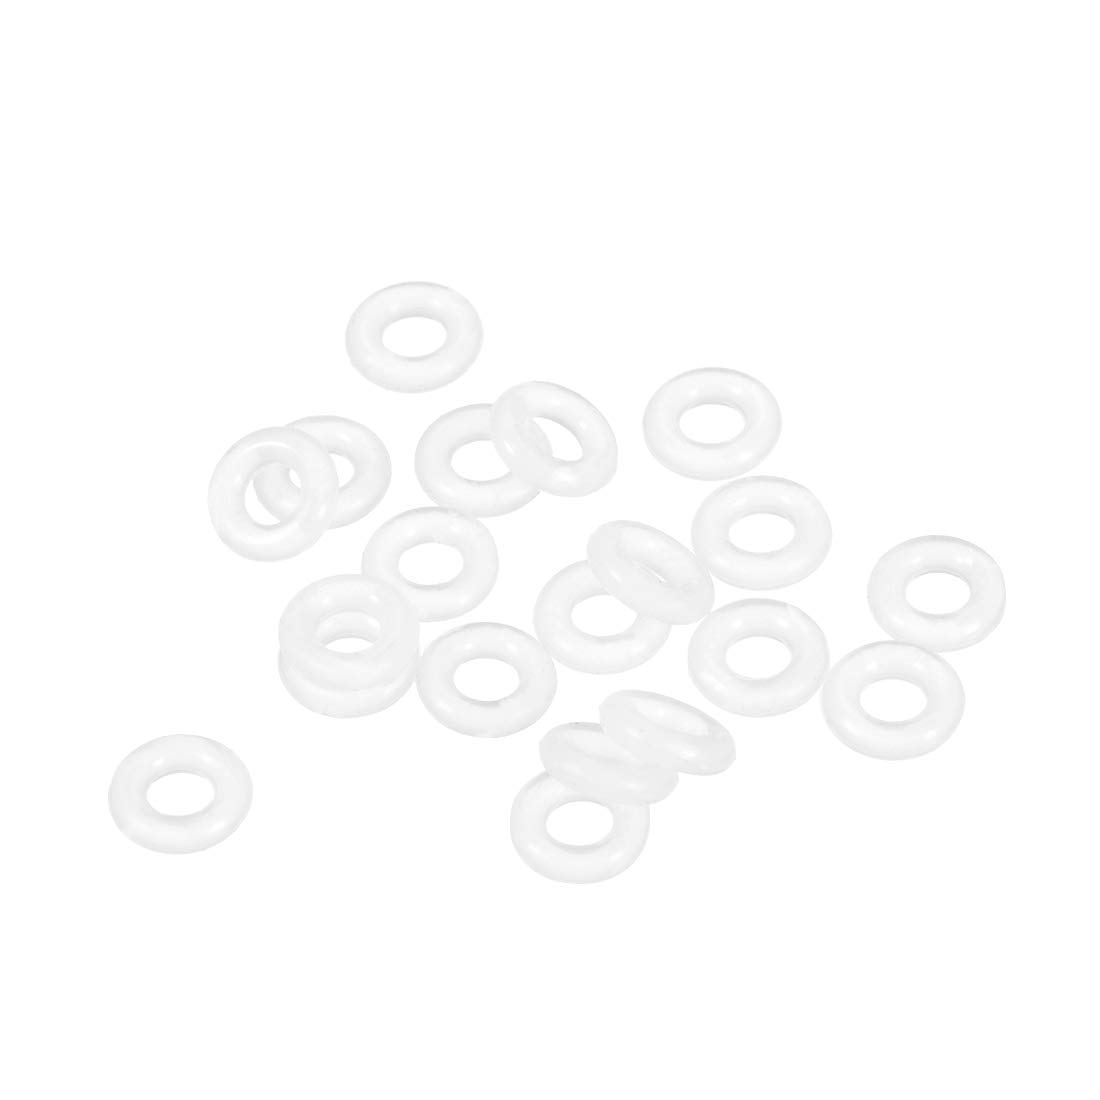 2mm Width Seal Gasket 20pcs 19mm Inner Diameter 23mm OD sourcing map Silicone O-Rings